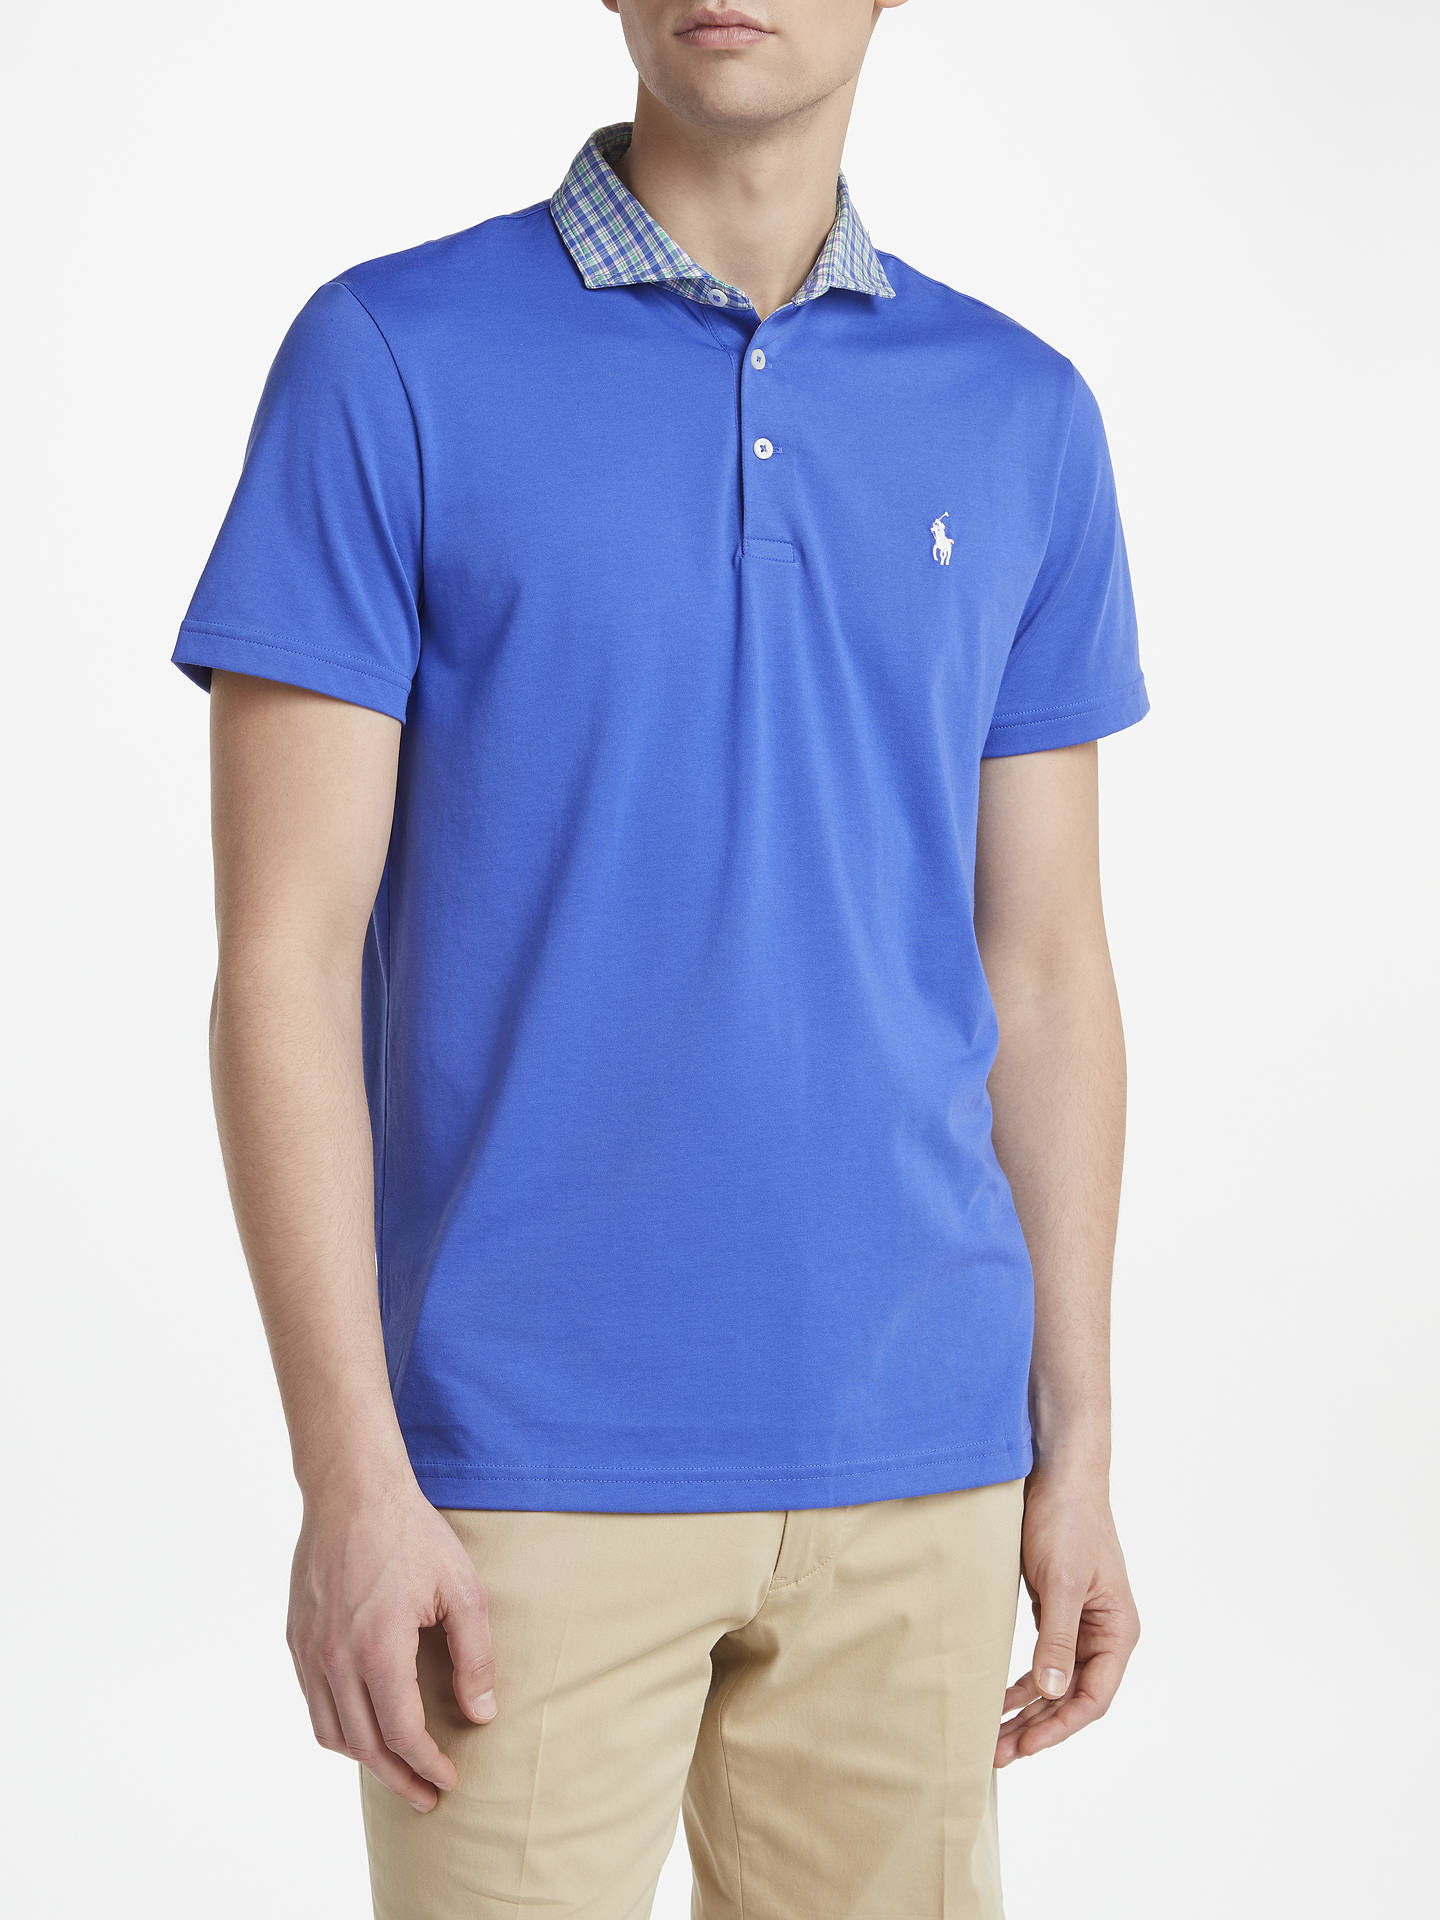 4acf3e11c Buy Polo Golf by Ralph Lauren Pro-Fit Polo Shirt , Summer Royal, S ...